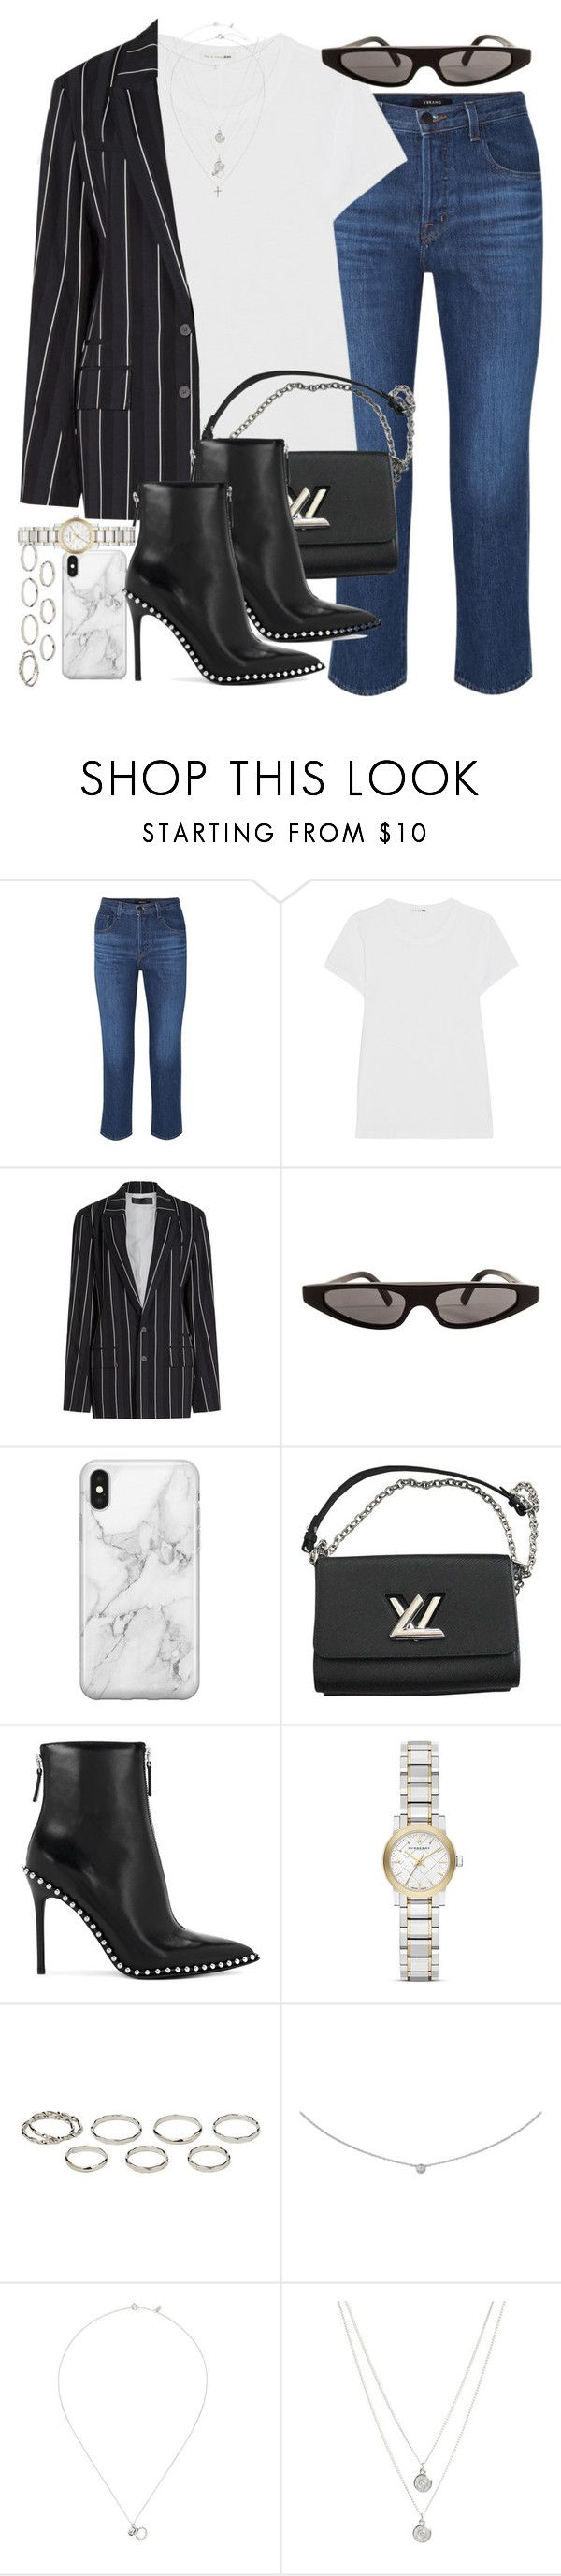 """""""Sin título #4630"""" by hellomissapple ❤ liked on Polyvore featuring J Brand, rag & bone, Haider Ackermann, Dolce&Gabbana, Recover, Louis Vuitton, Alexander Wang, Burberry, Akira and Cartier"""